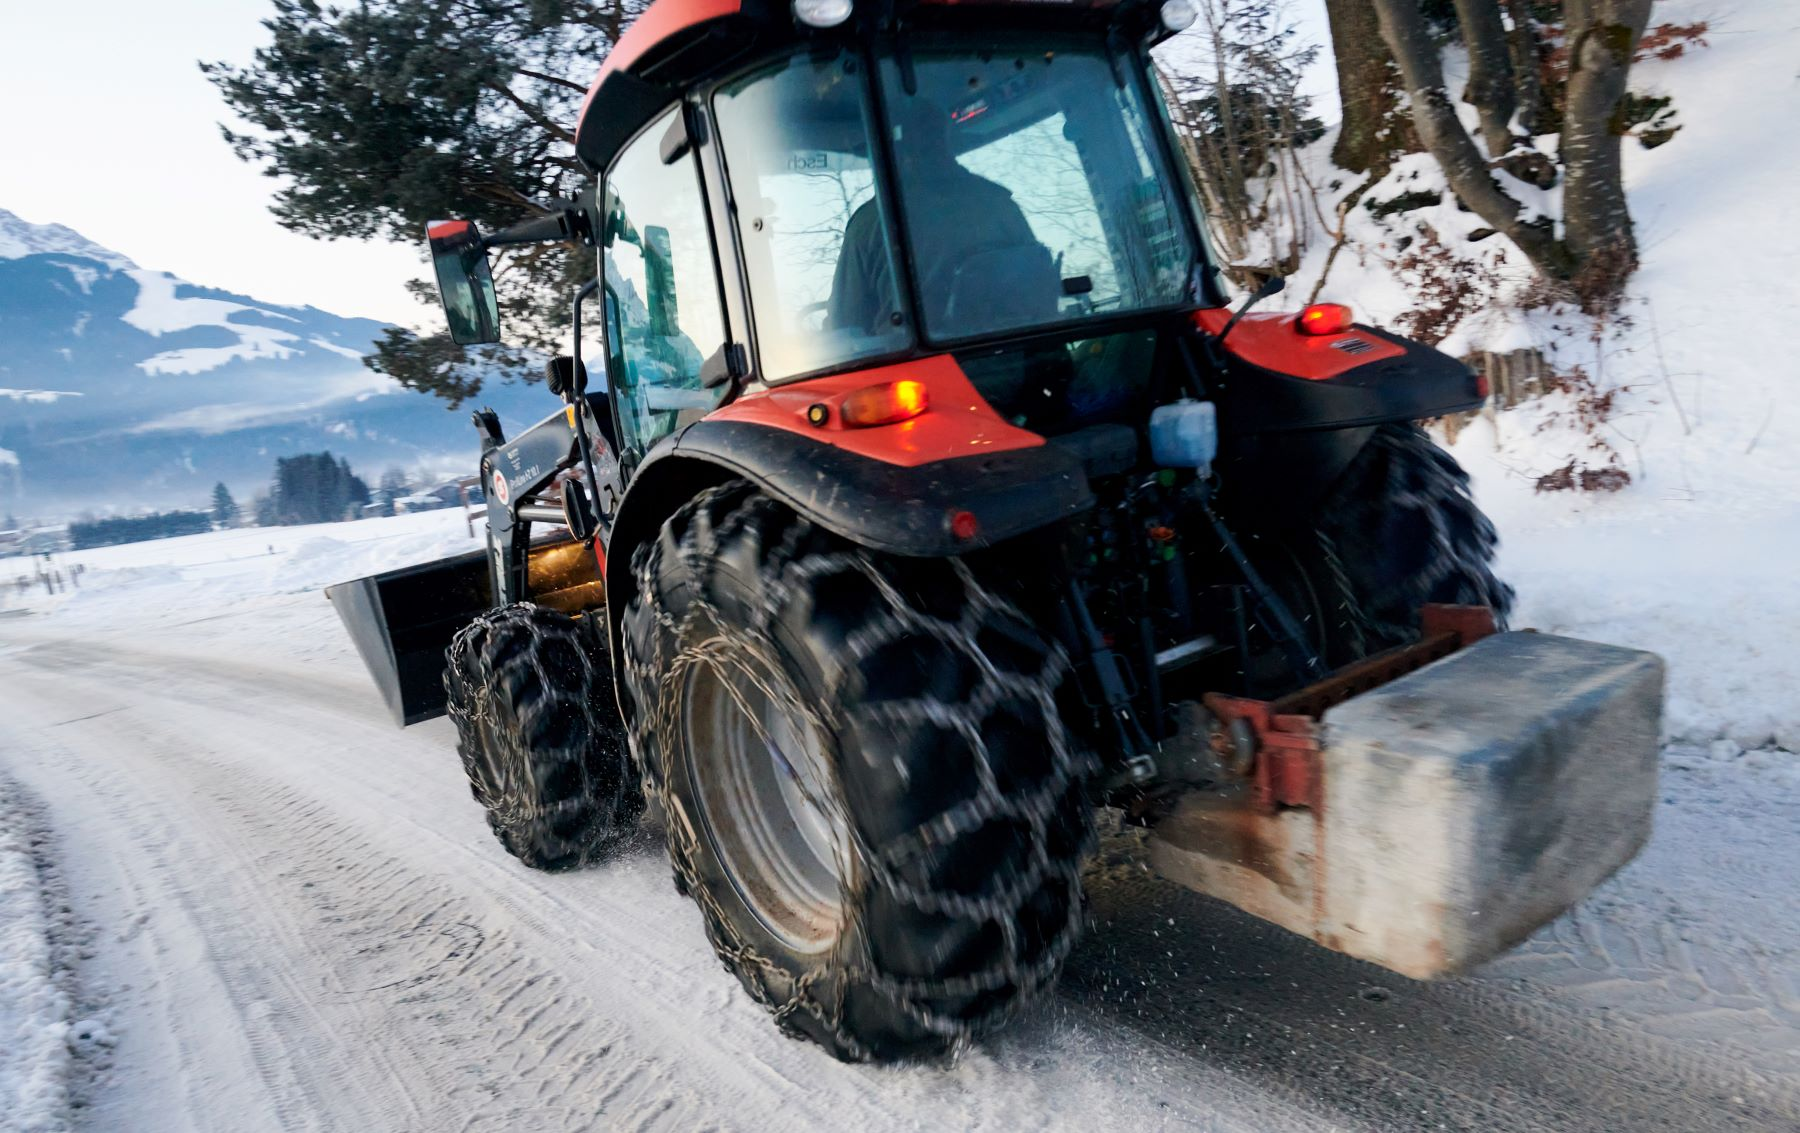 A tractor driving on a snowy road with with snow chains on its tires